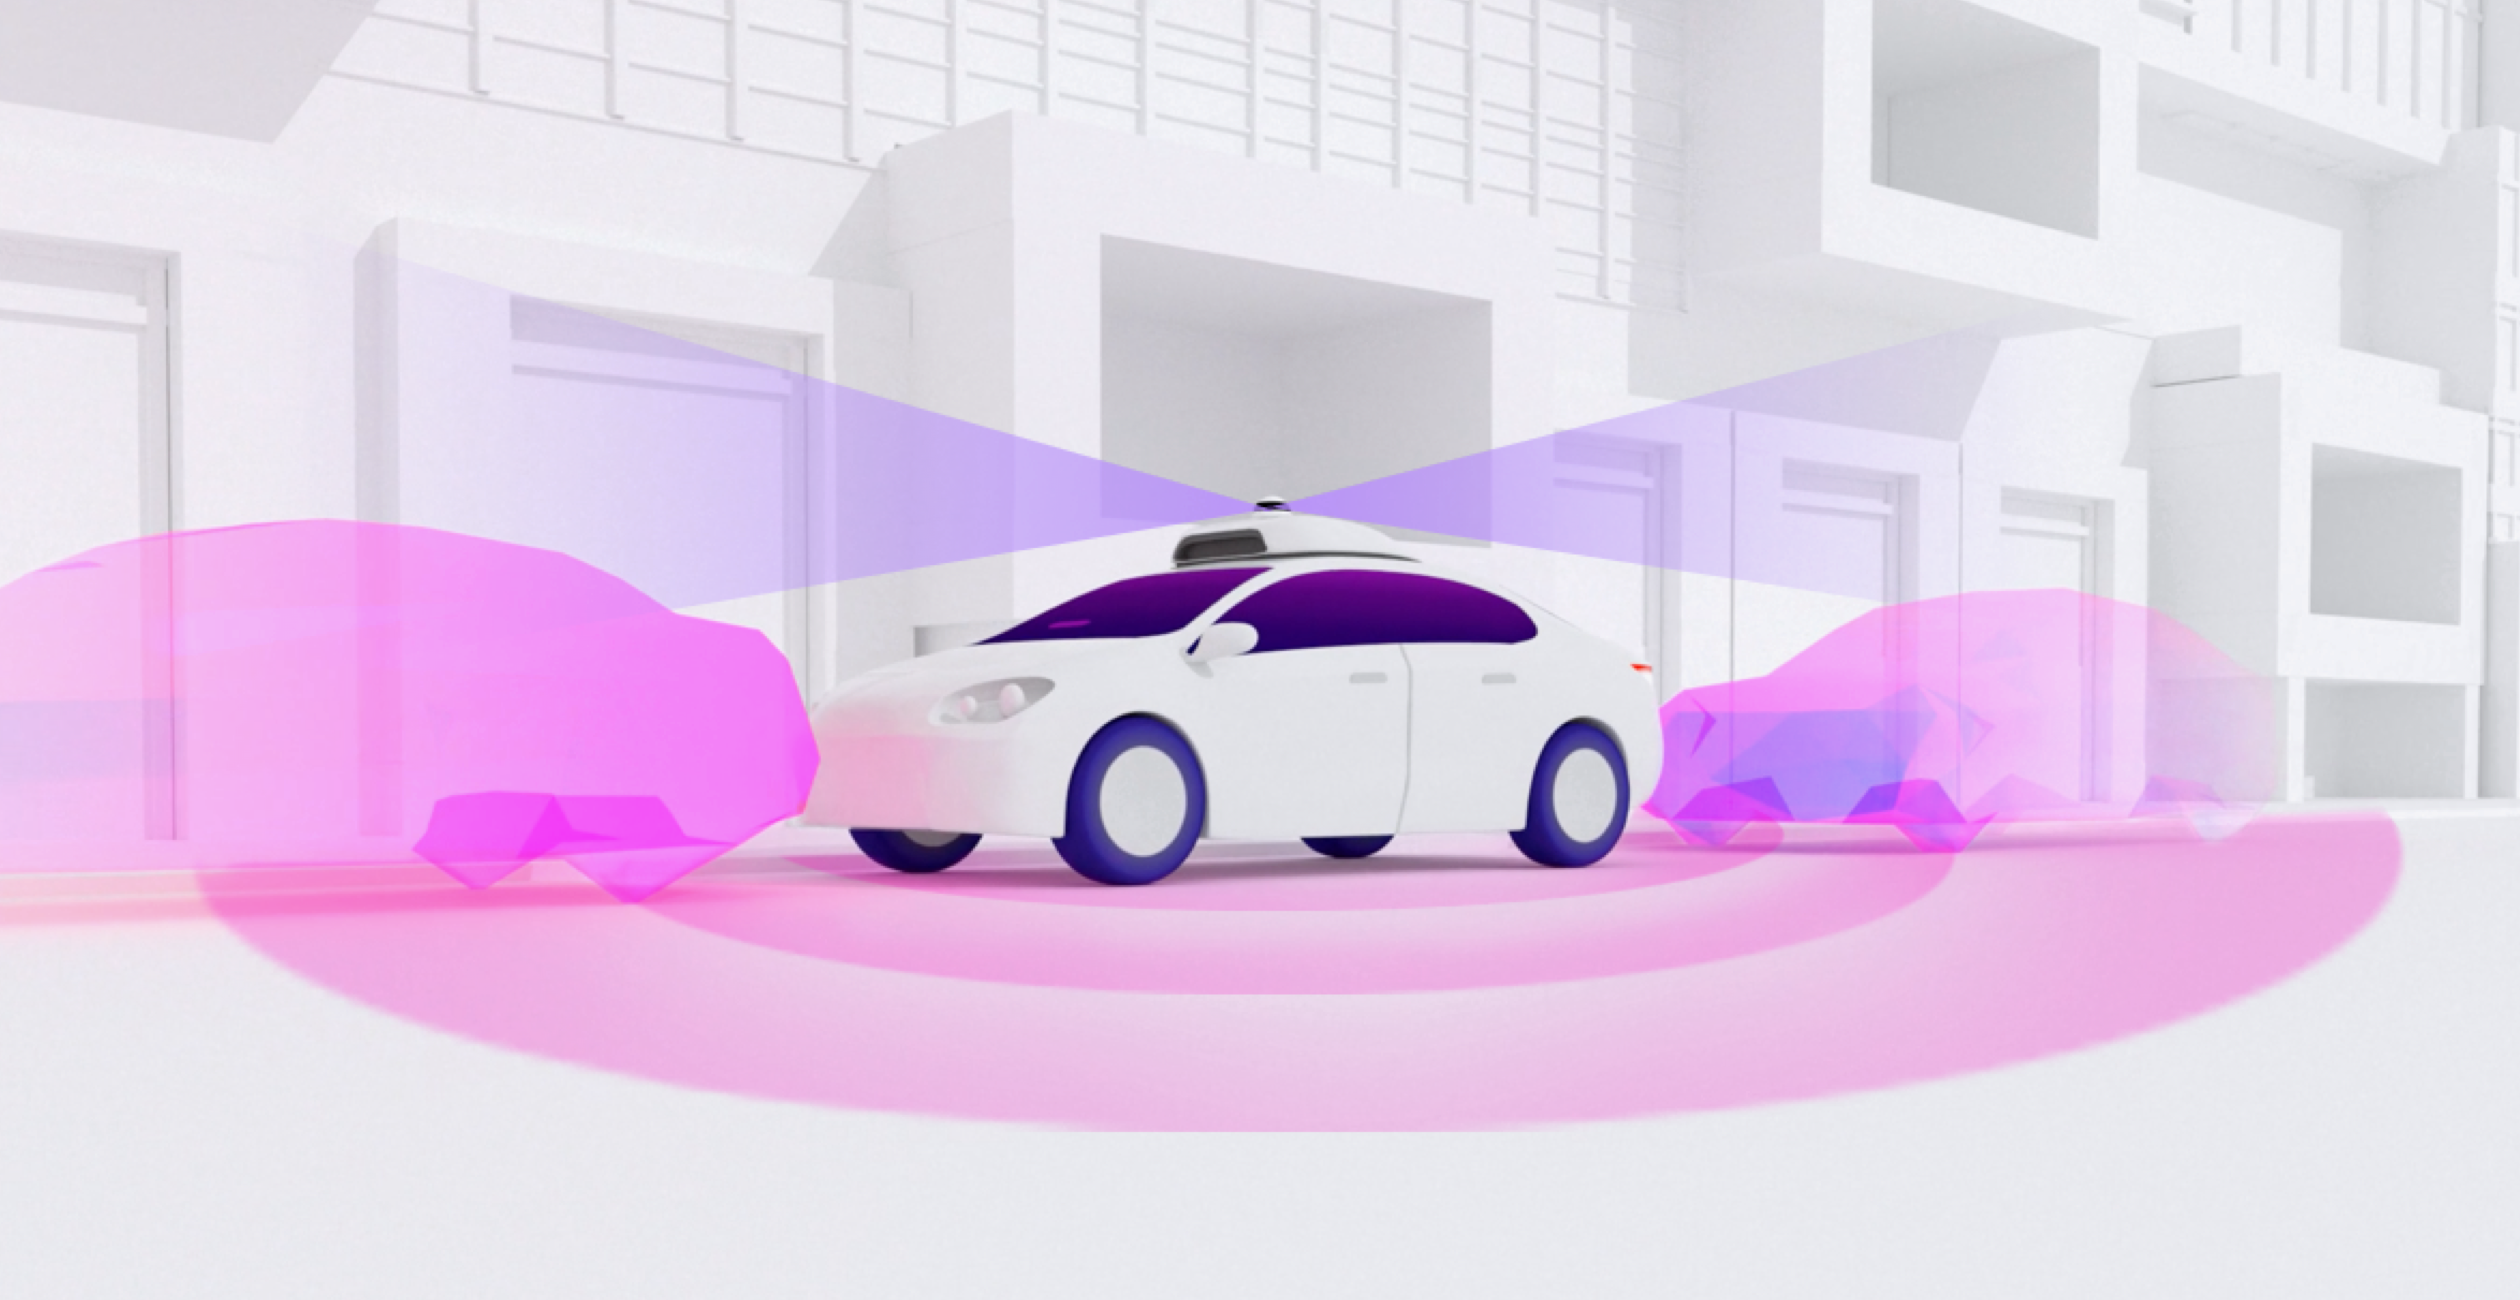 Self driving Lyft vehicle with camera 360 degree camera sensor